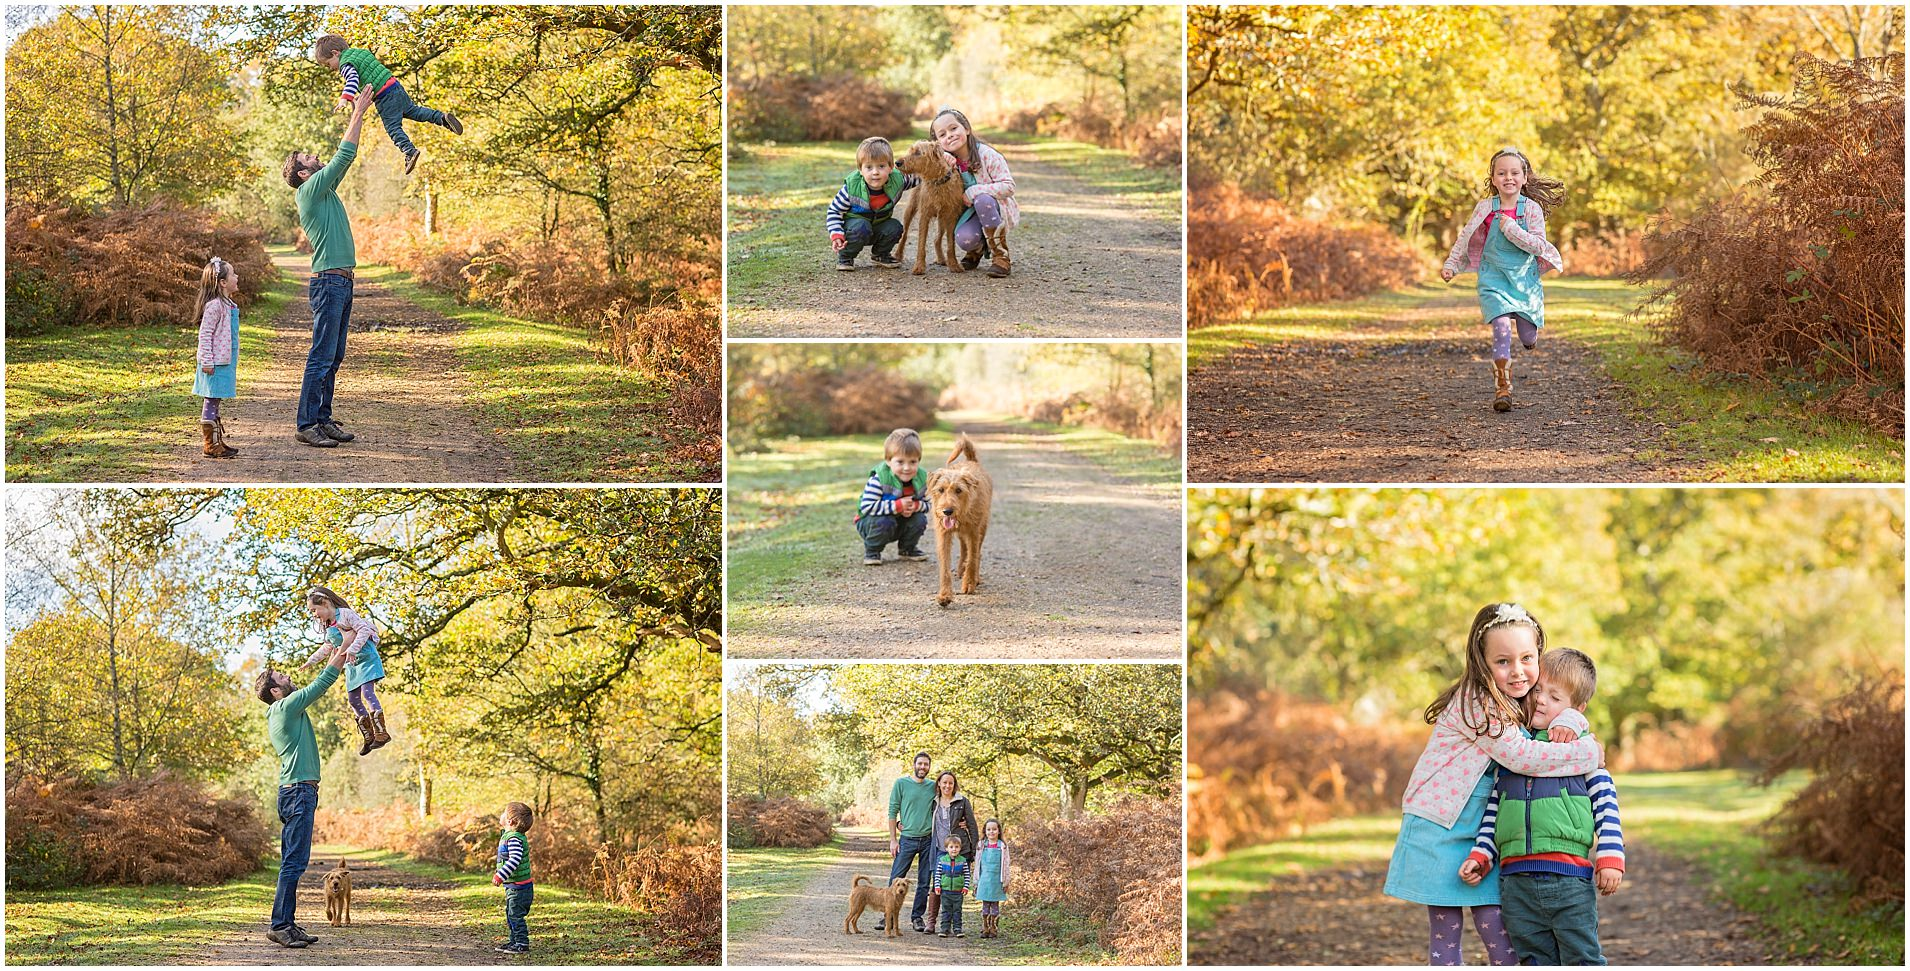 New Forest outdoor natural family photoshoot #familyphotography